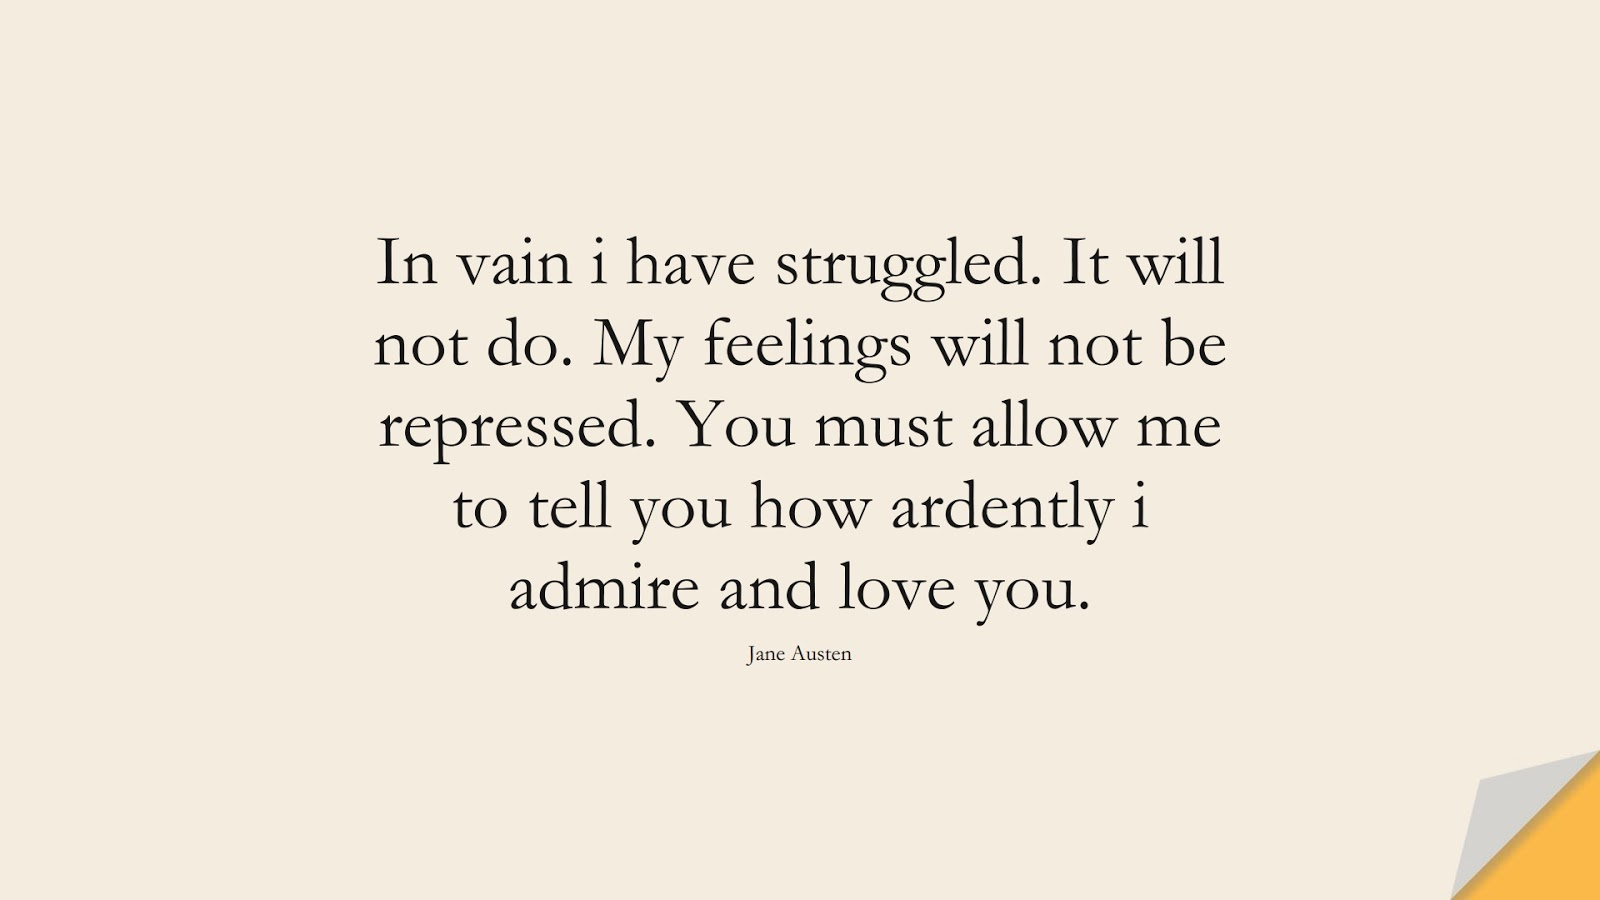 In vain i have struggled. It will not do. My feelings will not be repressed. You must allow me to tell you how ardently i admire and love you. (Jane Austen);  #LoveQuotes